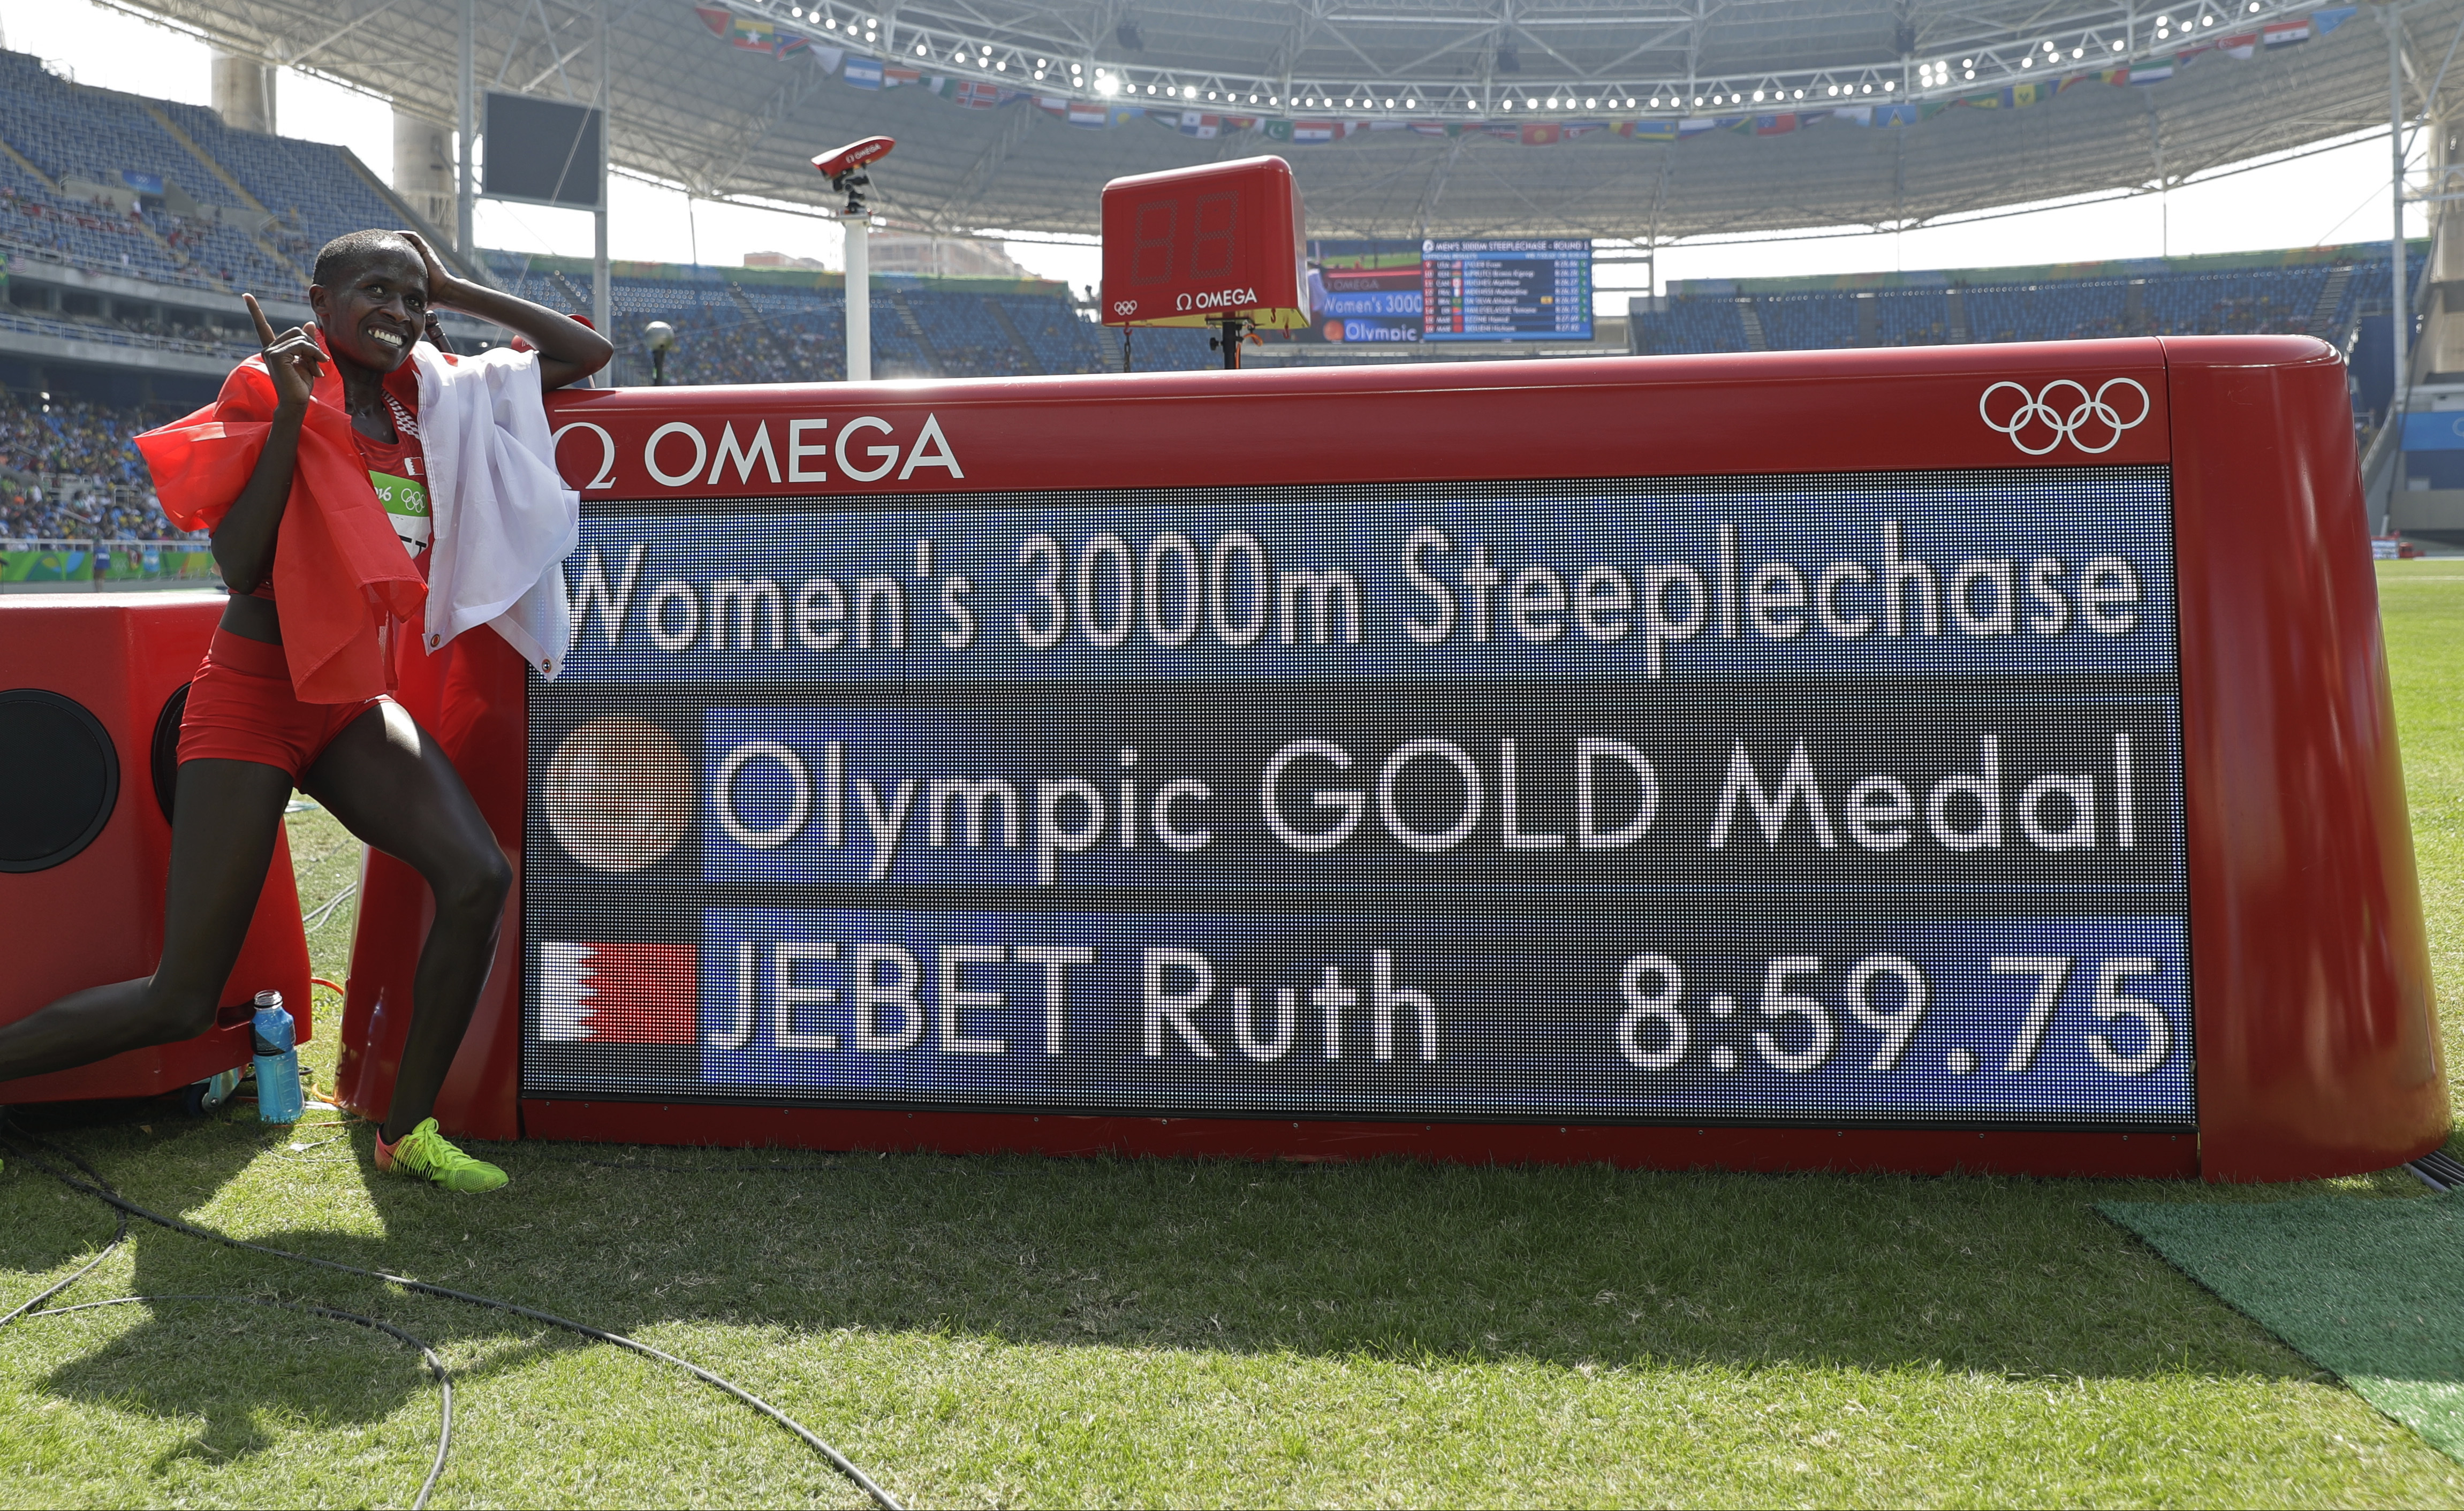 Bahrain's Ruth Jebet poses beside the timing board after winning the gold medal in the women's 3000-meter steeplechase final during the athletics competitions in the Olympic stadium of the 2016 Summer Olympics in Rio de Janeiro, Brazil, Monday, Aug. 15, 2